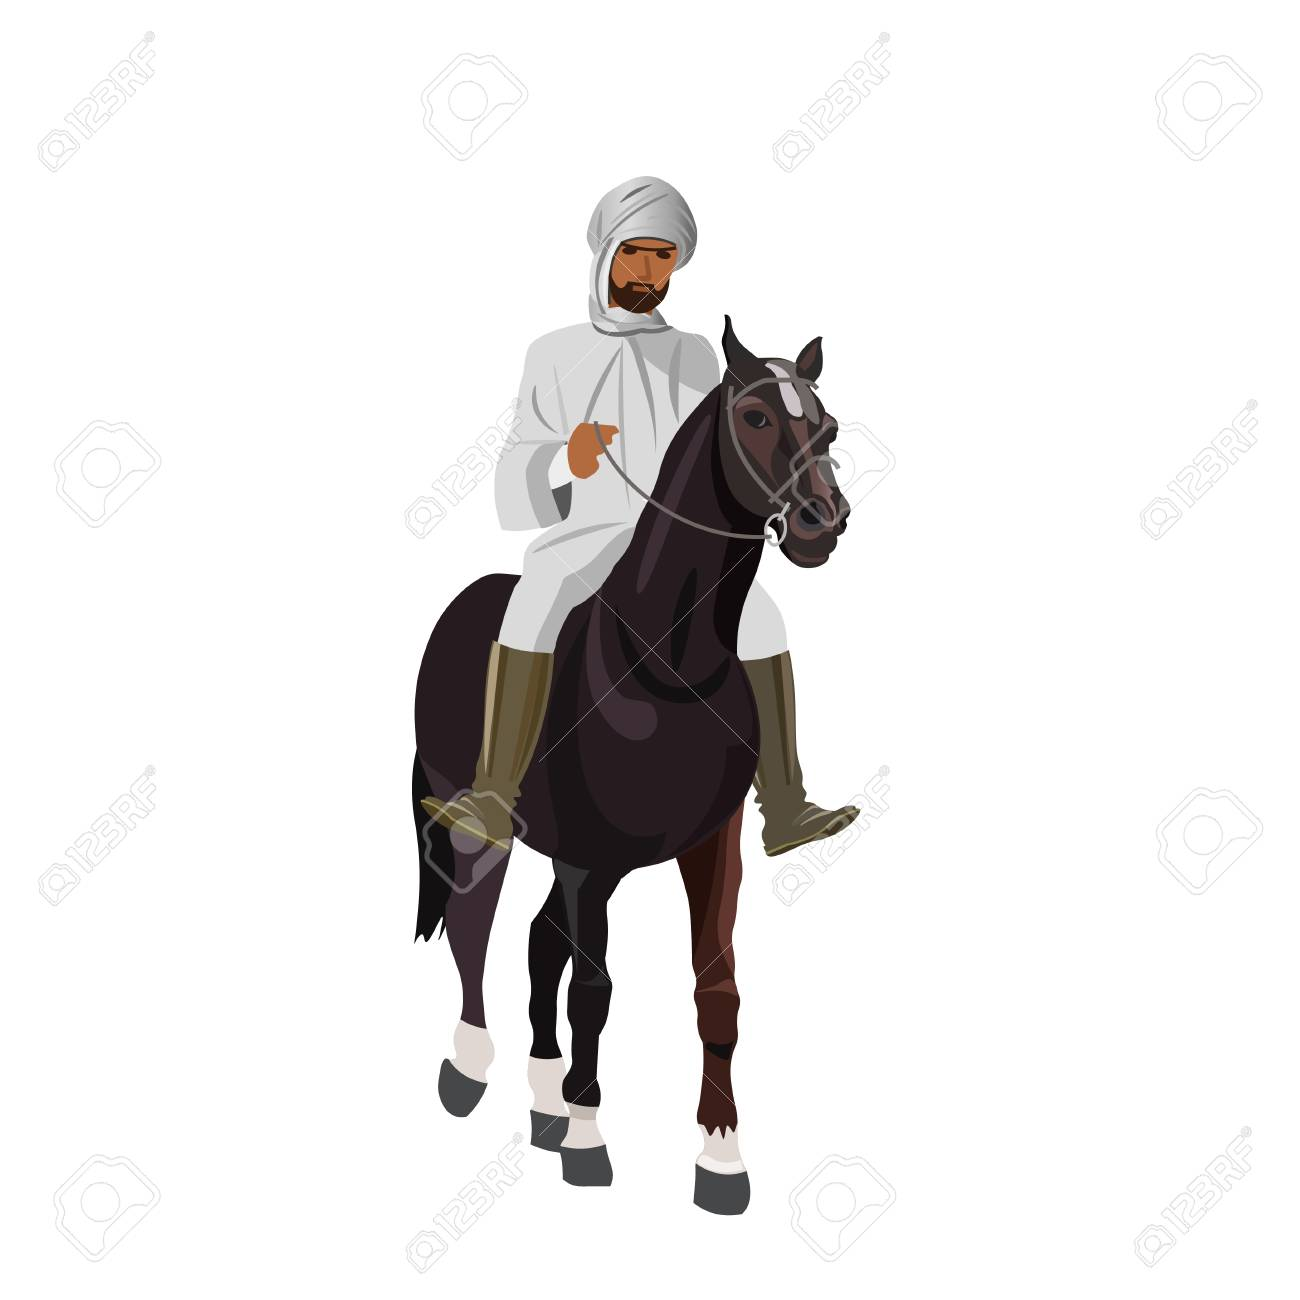 Arab Man In Traditional Clothing Riding His Horse Vector Illustration Royalty Free Cliparts Vectors And Stock Illustration Image 101017596